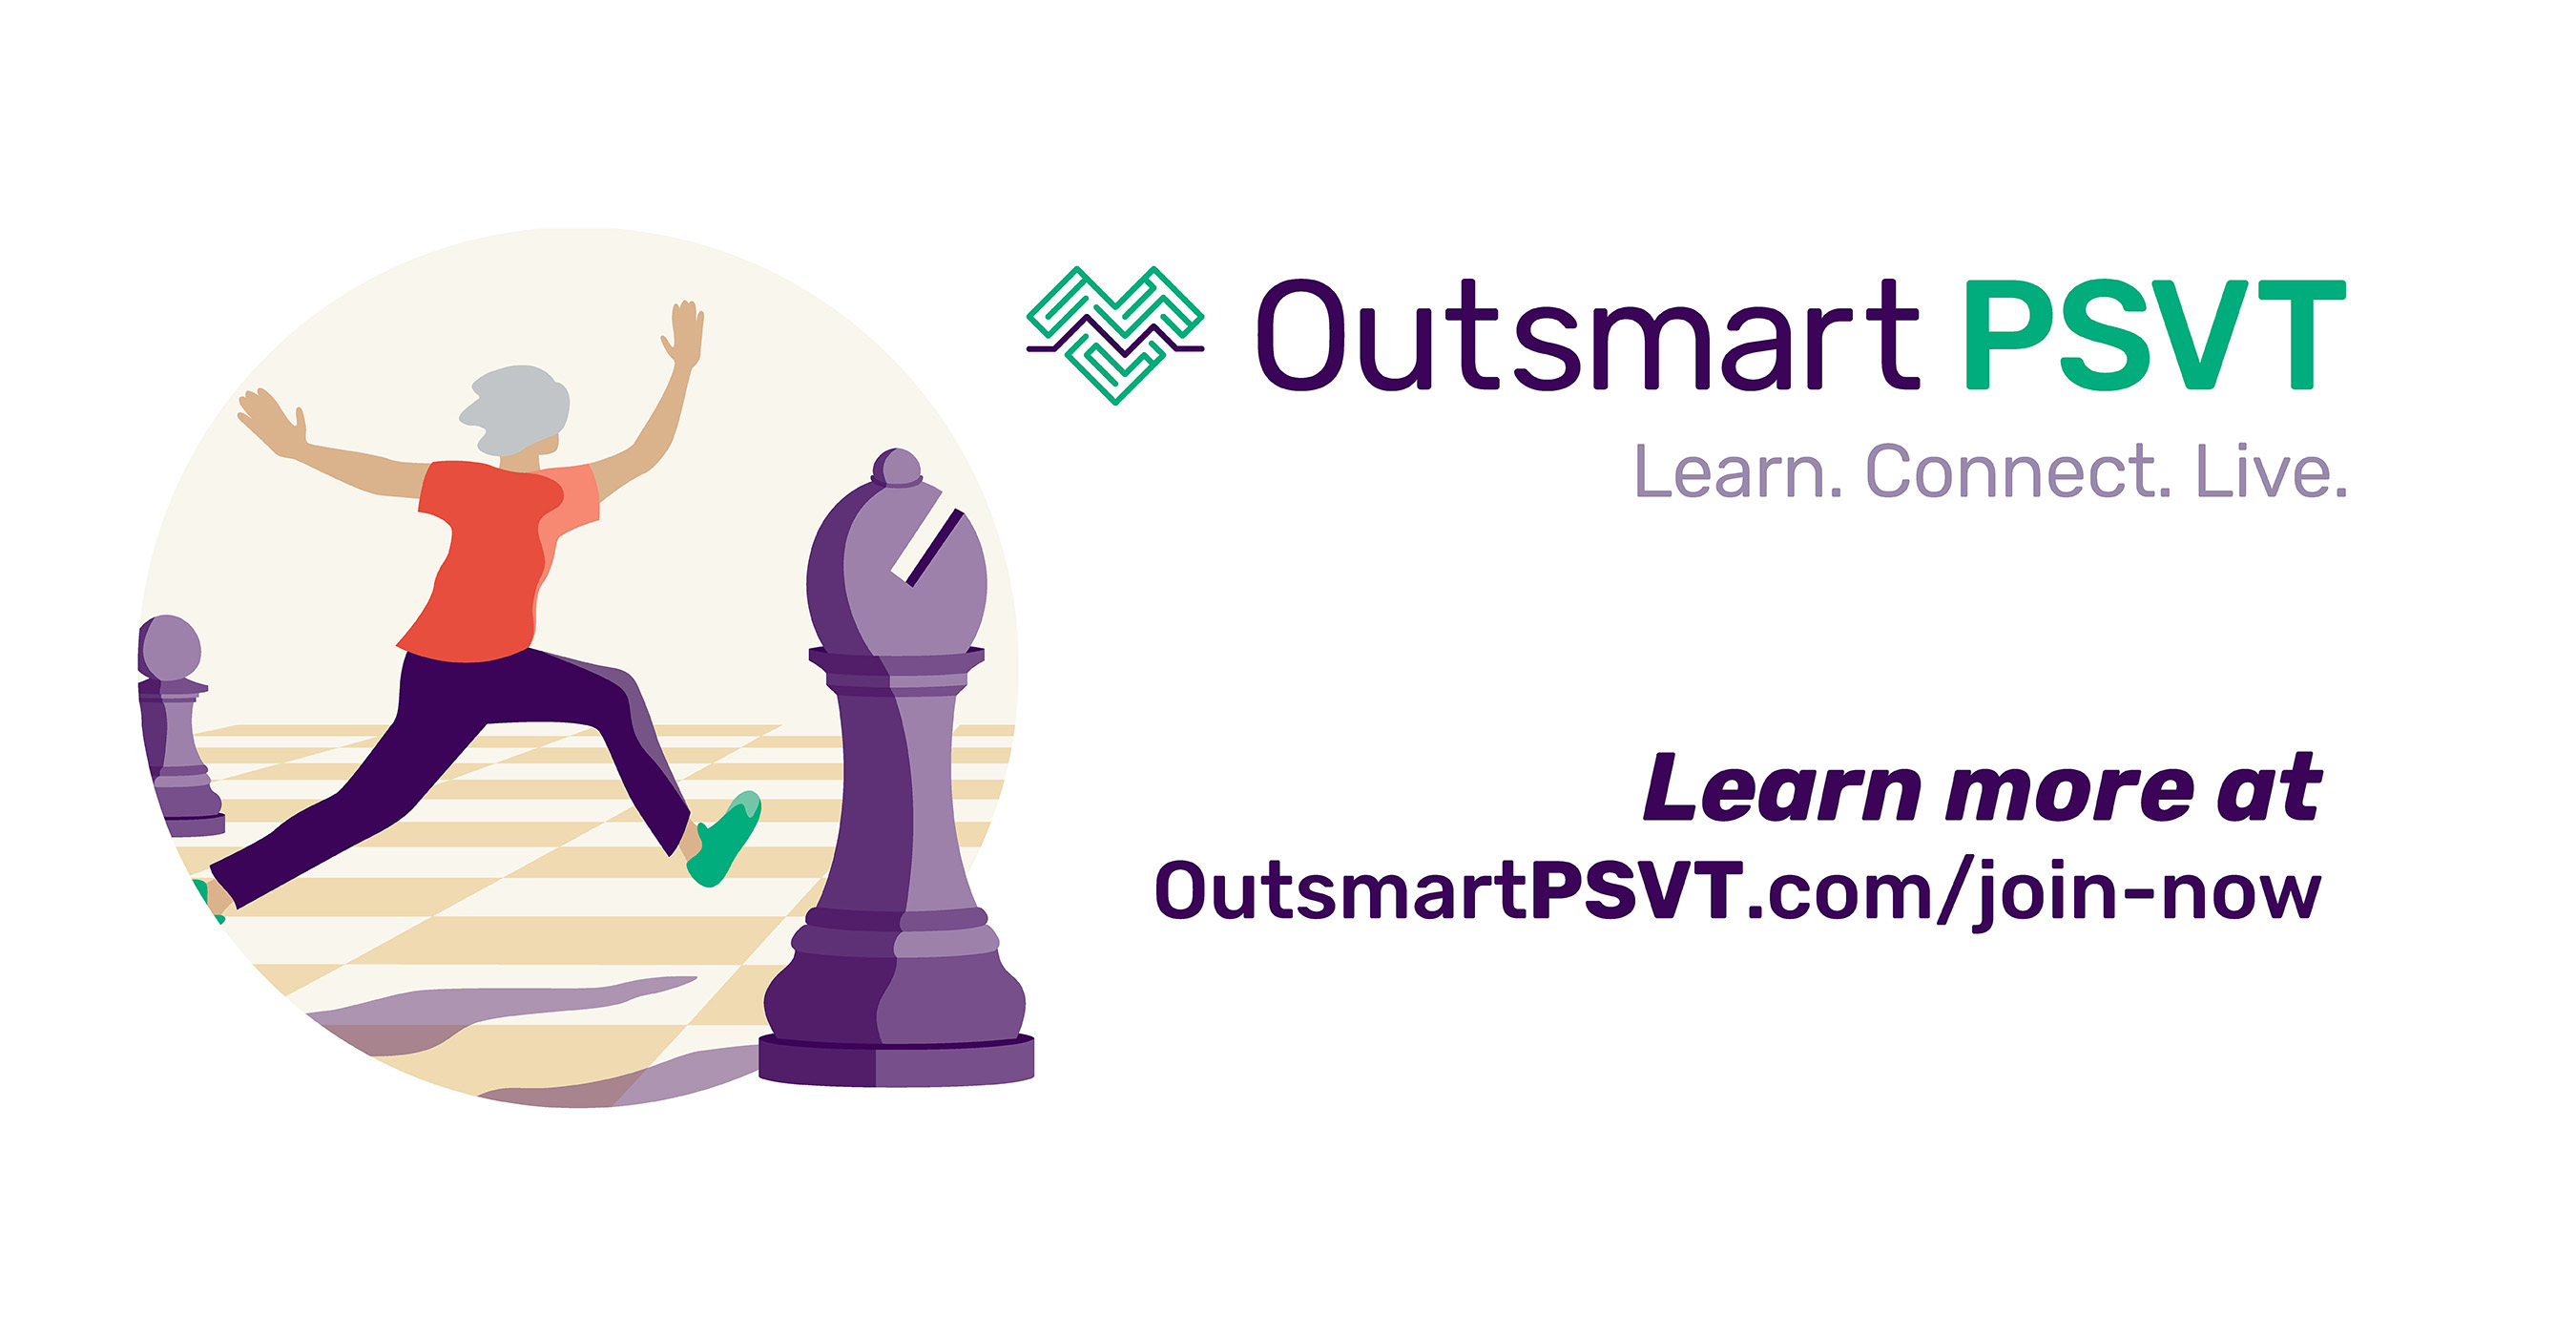 Sign up today for the only online patient registry for those living with a #RapidHeartRate, called #PSVT. Track your symptoms and bring better understanding to this condition. OutsmartPSVT.com/join-now #OutsmartPSVT